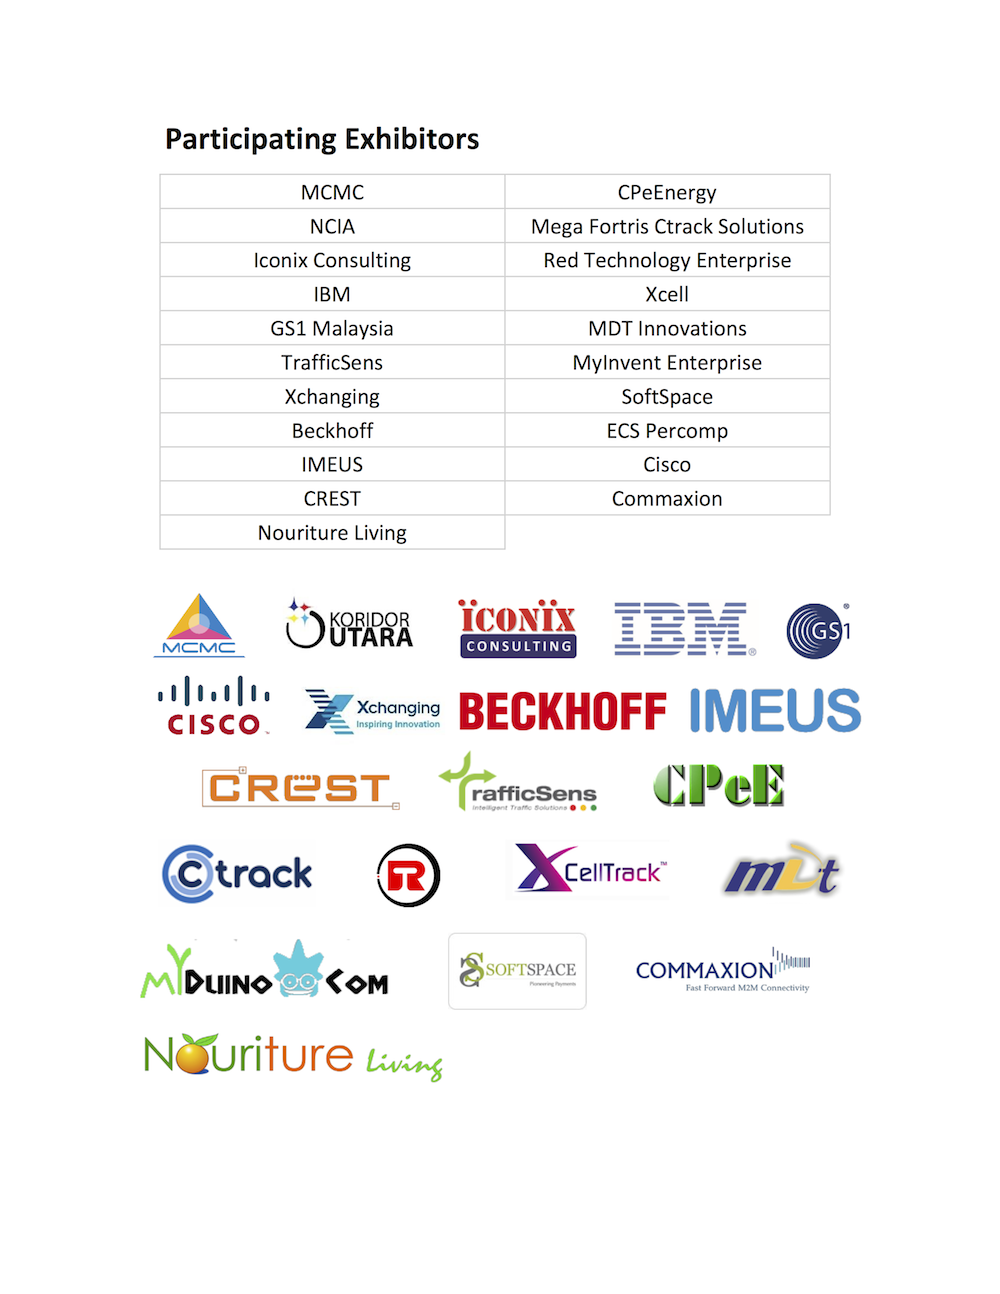 Connected Communities and Internet of Things Exhibitors